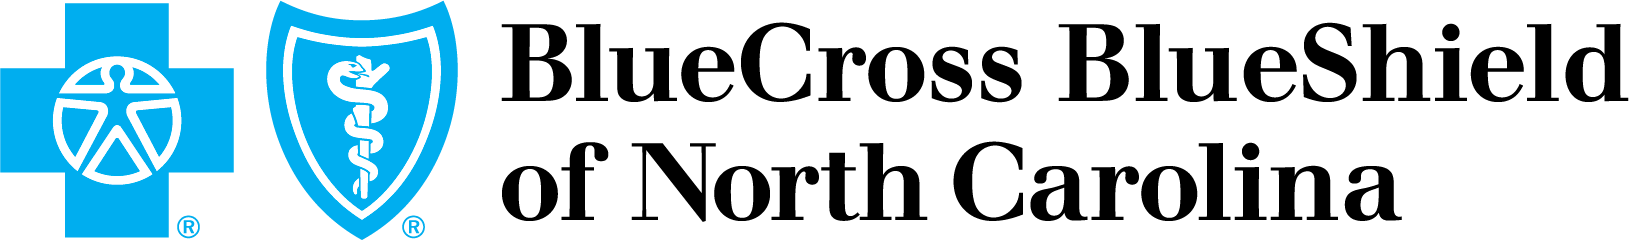 Blue Cross Blue Shield <br>of North Carolina <br> VGSE19 Comfort Zone Sponsor